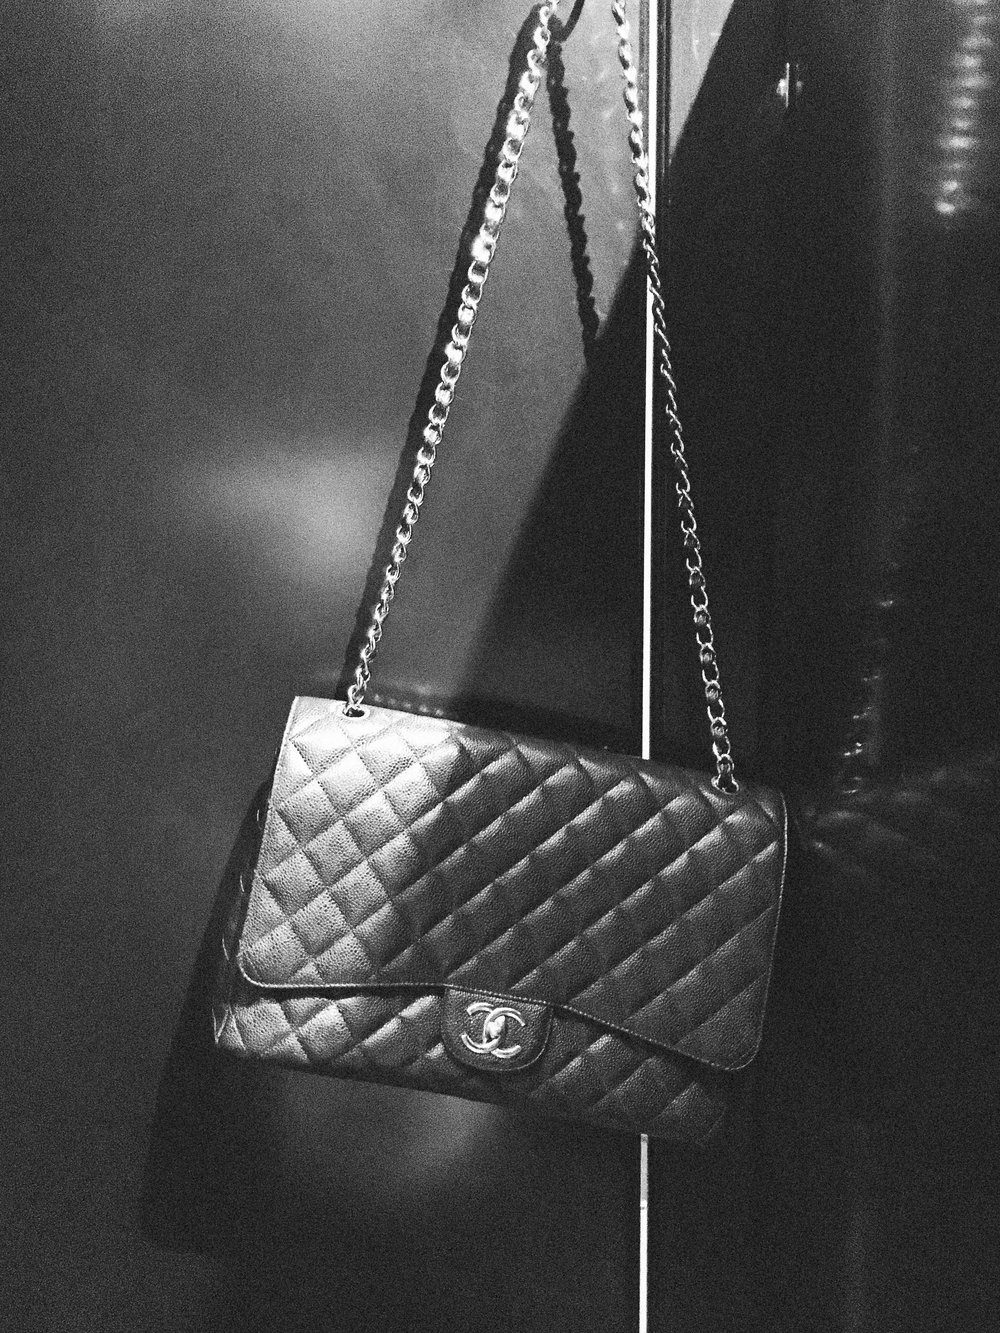 chanel maxi bag via taylorkristiina.com